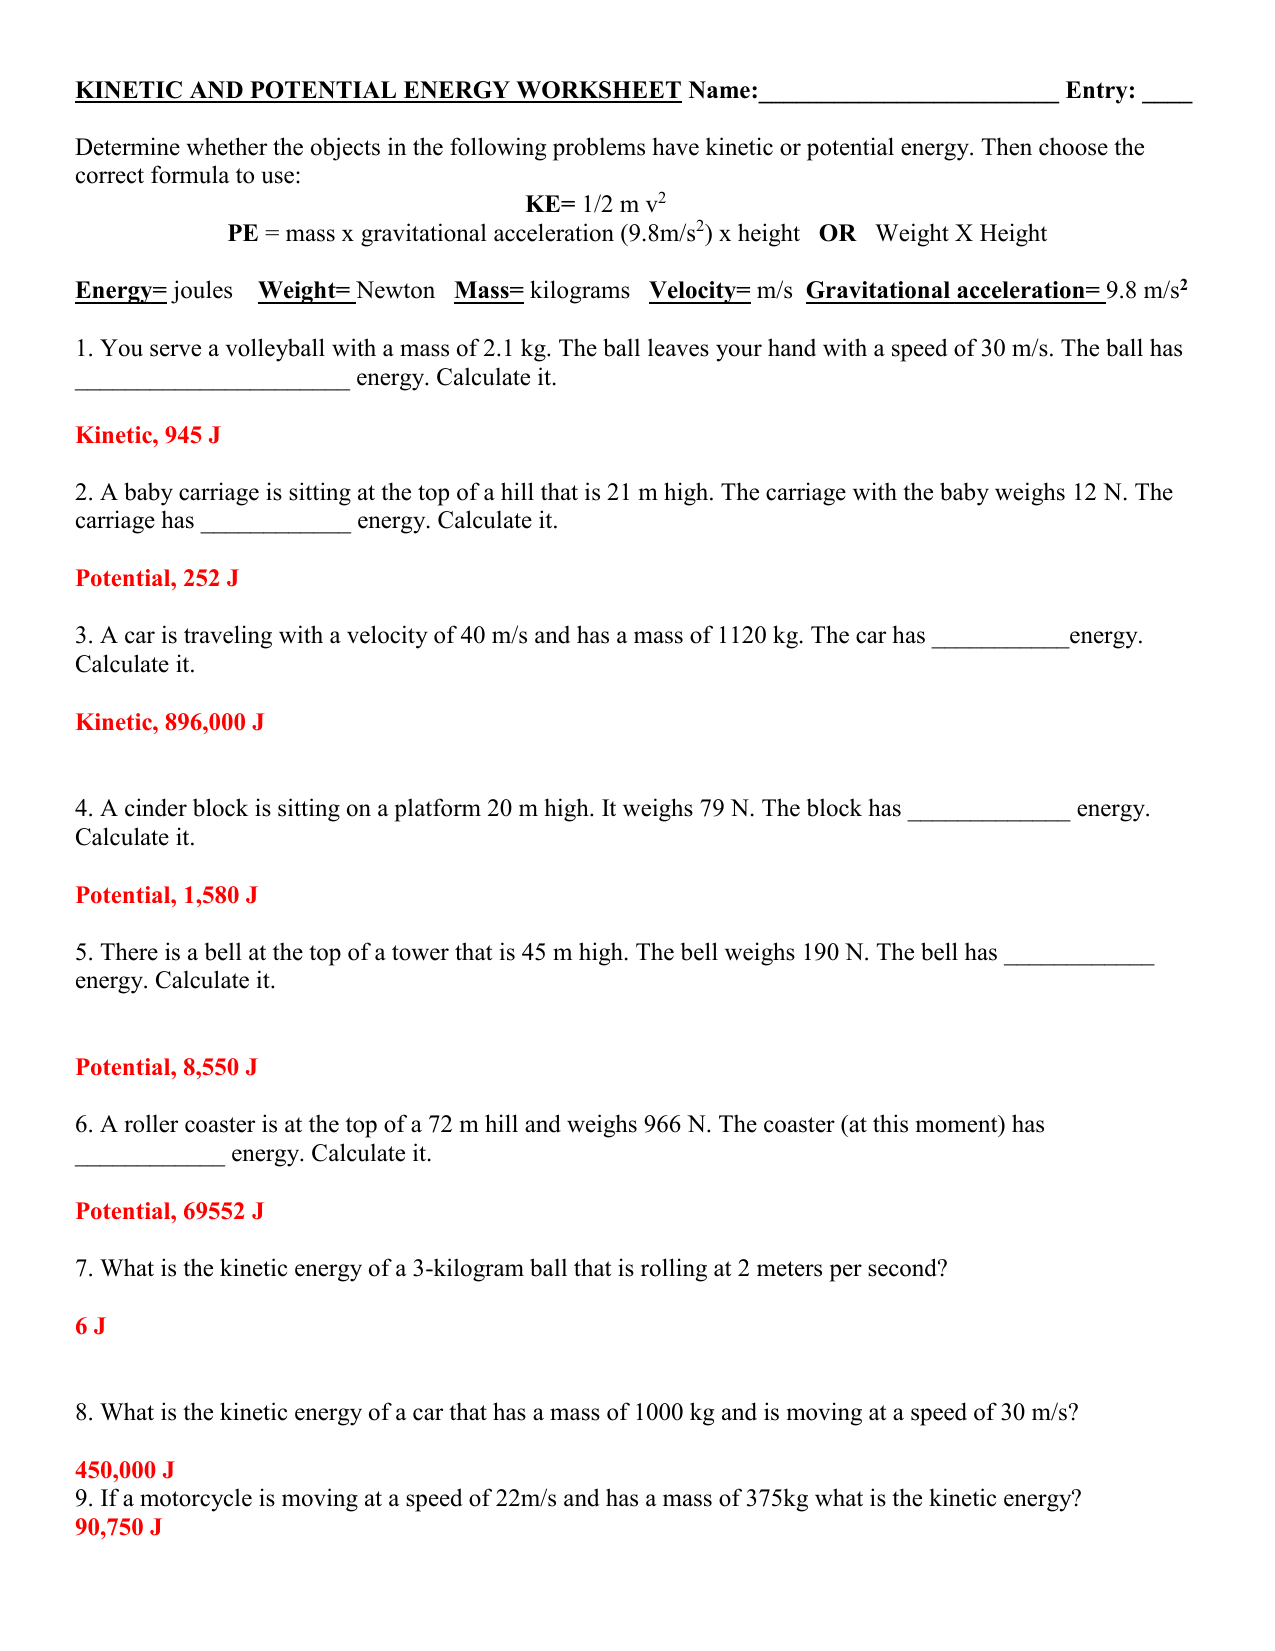 Pe And Ke Practice Key 1